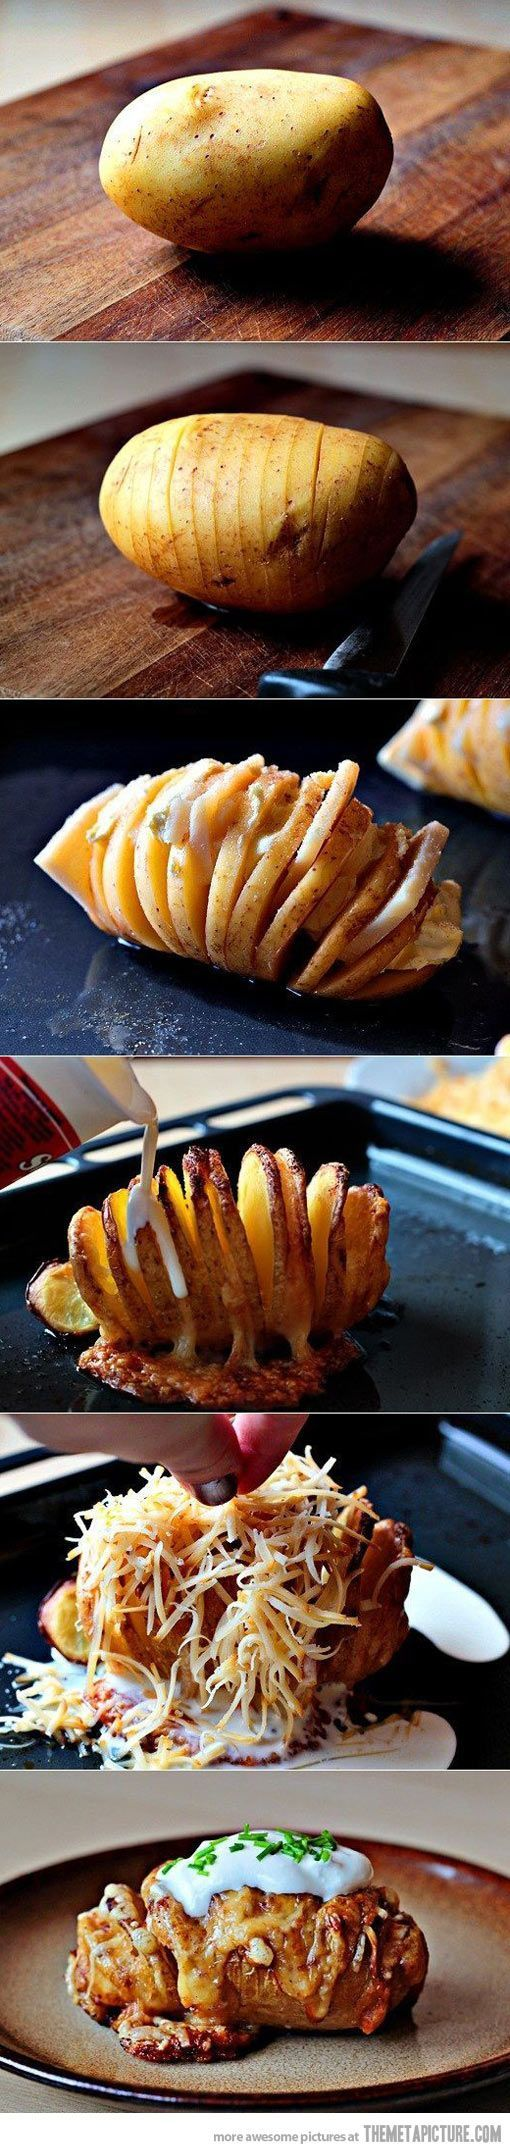 Potatoes stuffed with cheese and bacon - Batata recheada com queijo e bacon #cheese #bacon #batata #potato